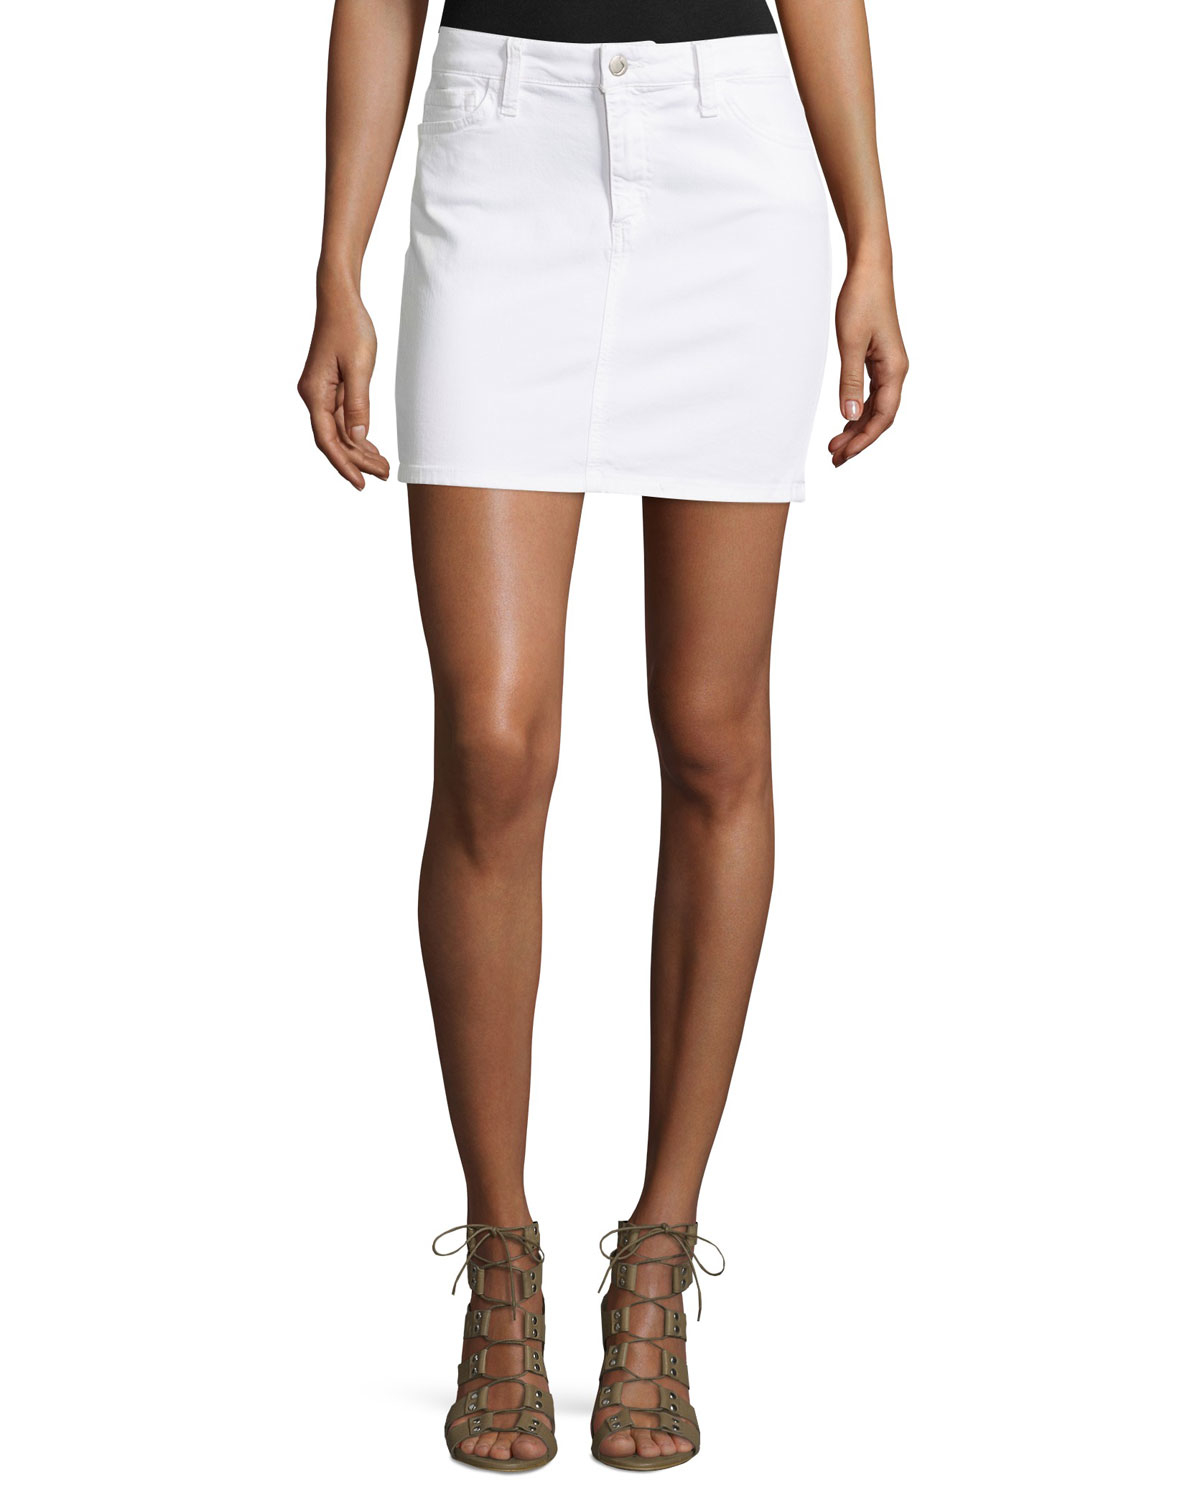 White Jean Mini Skirt 115